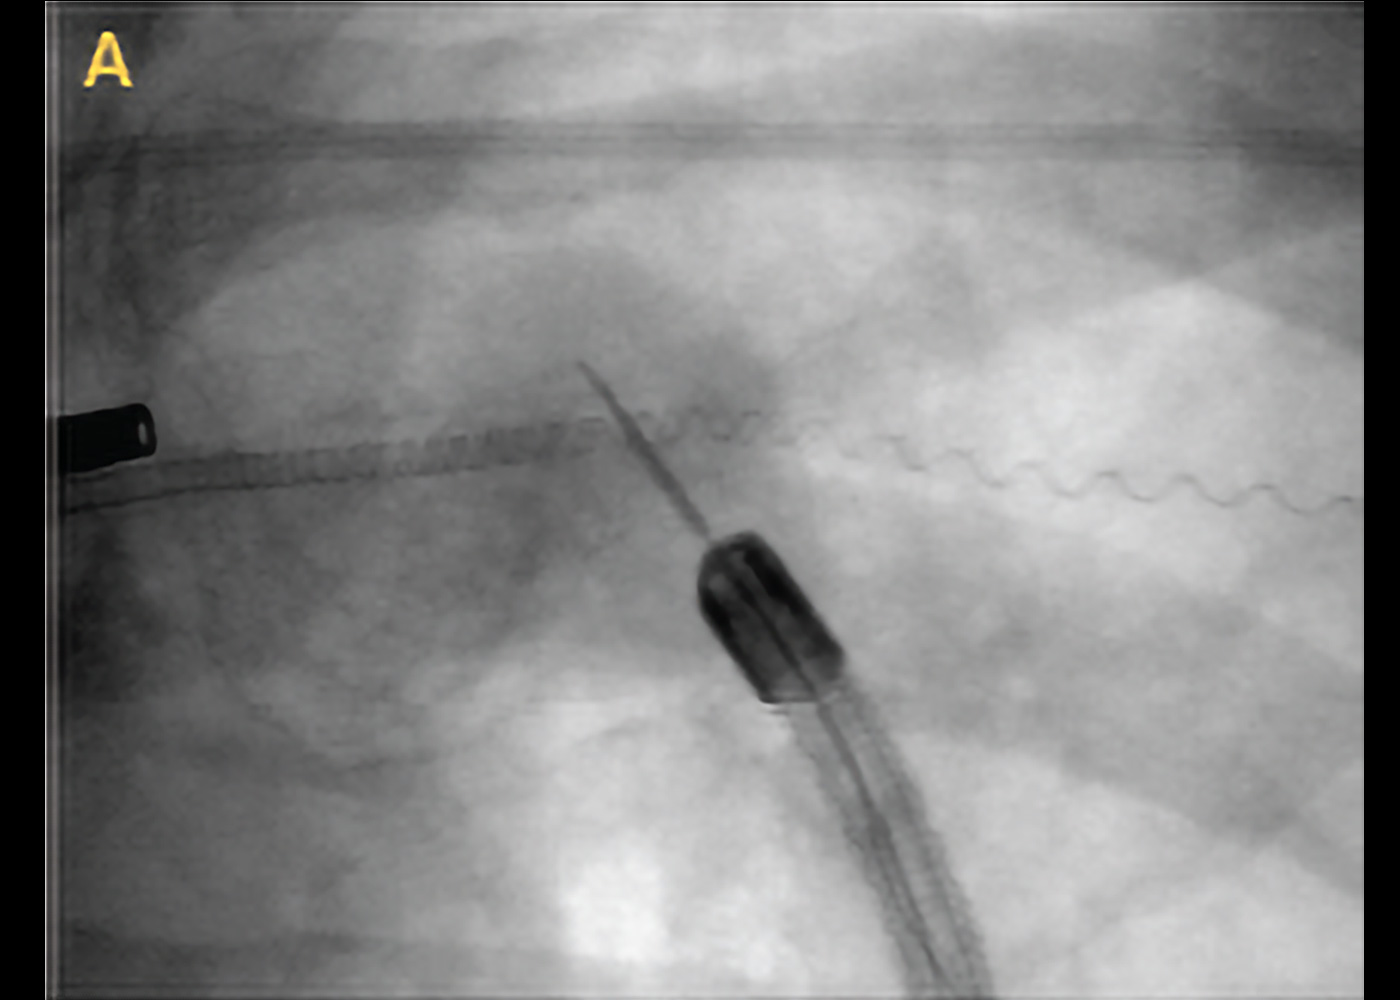 Fig 4. Fluoroscopic view of the RABguided needle biopsy of the left upper lobe nodule